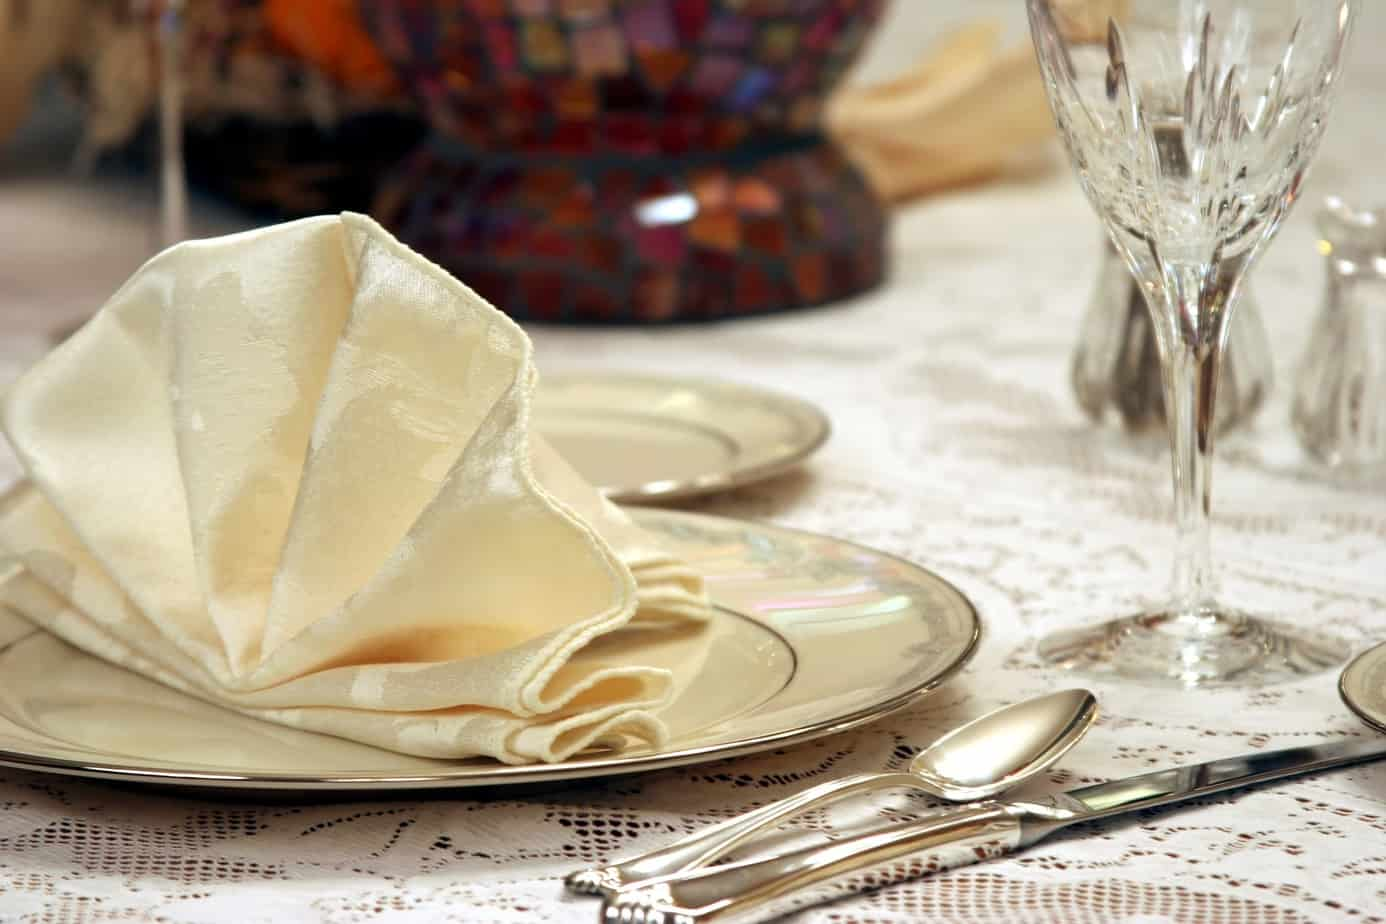 5 Elegant Napkin Folding Ideas For Party Table Decor Pico Party Rentals